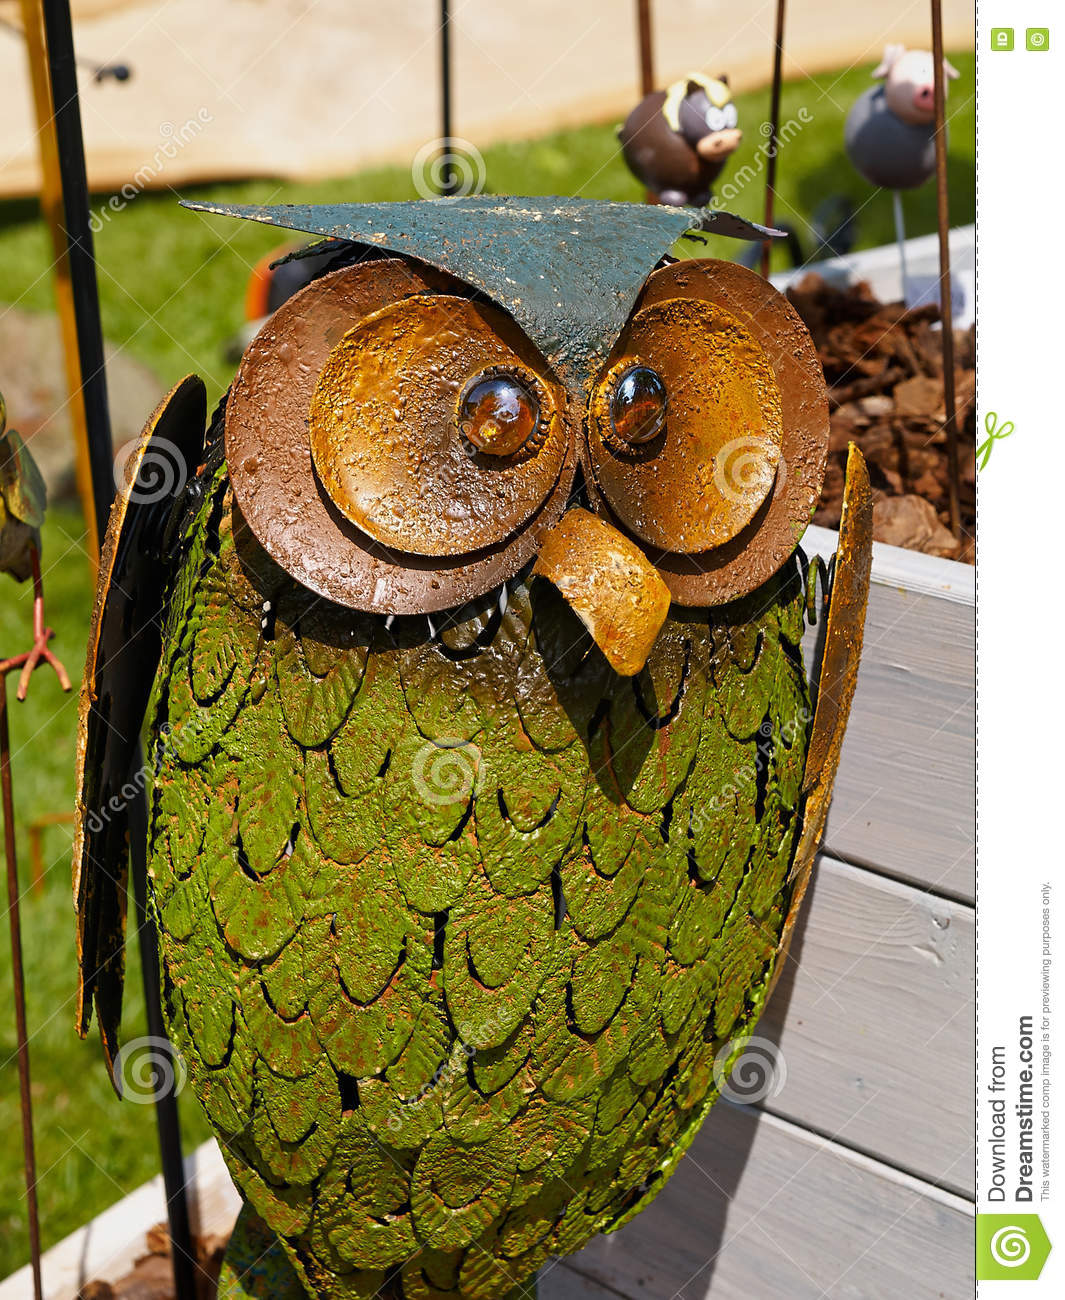 Statue Figurine Of Owl Made Of Metal Stock Photo - Image of grunge ...